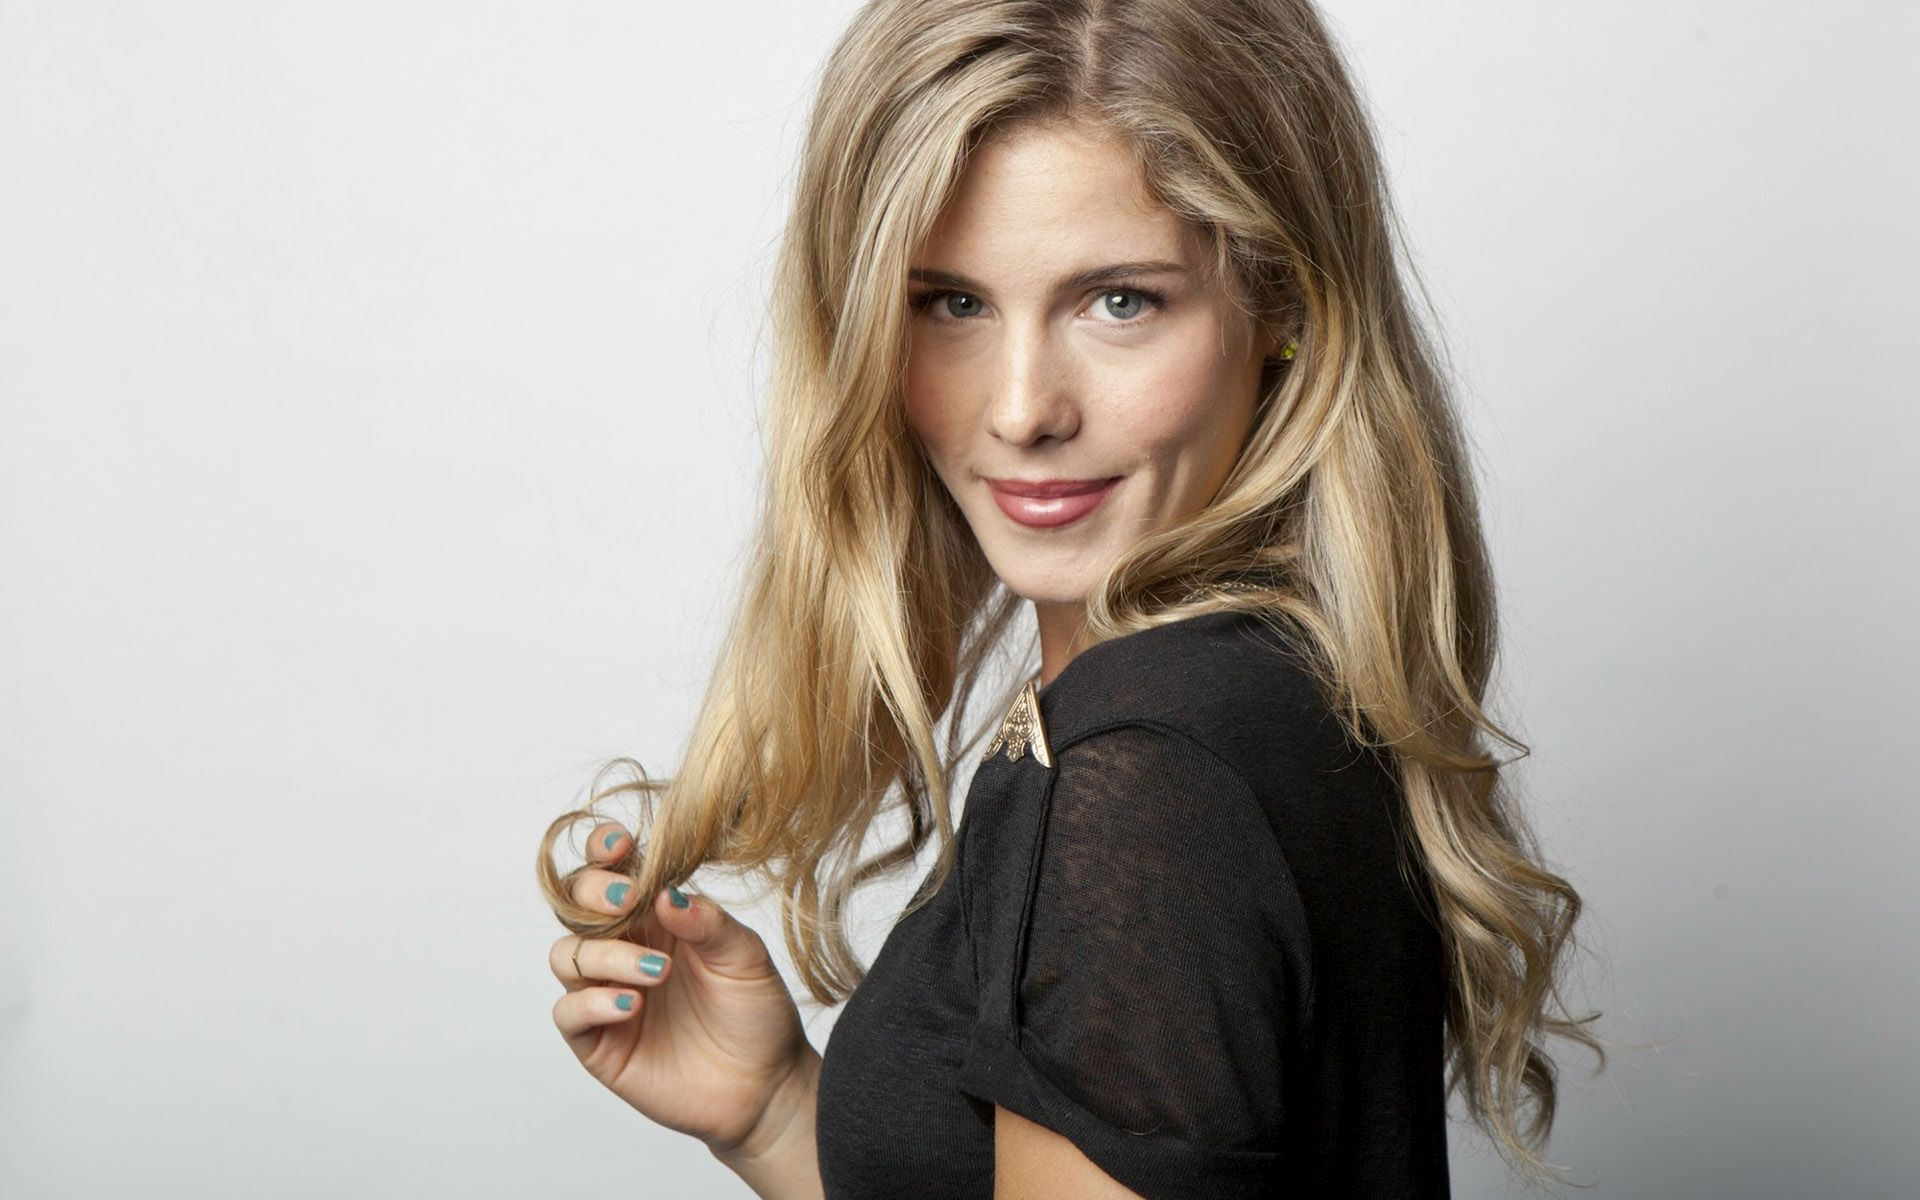 emily bett rickards wallpapers images photos pictures backgrounds